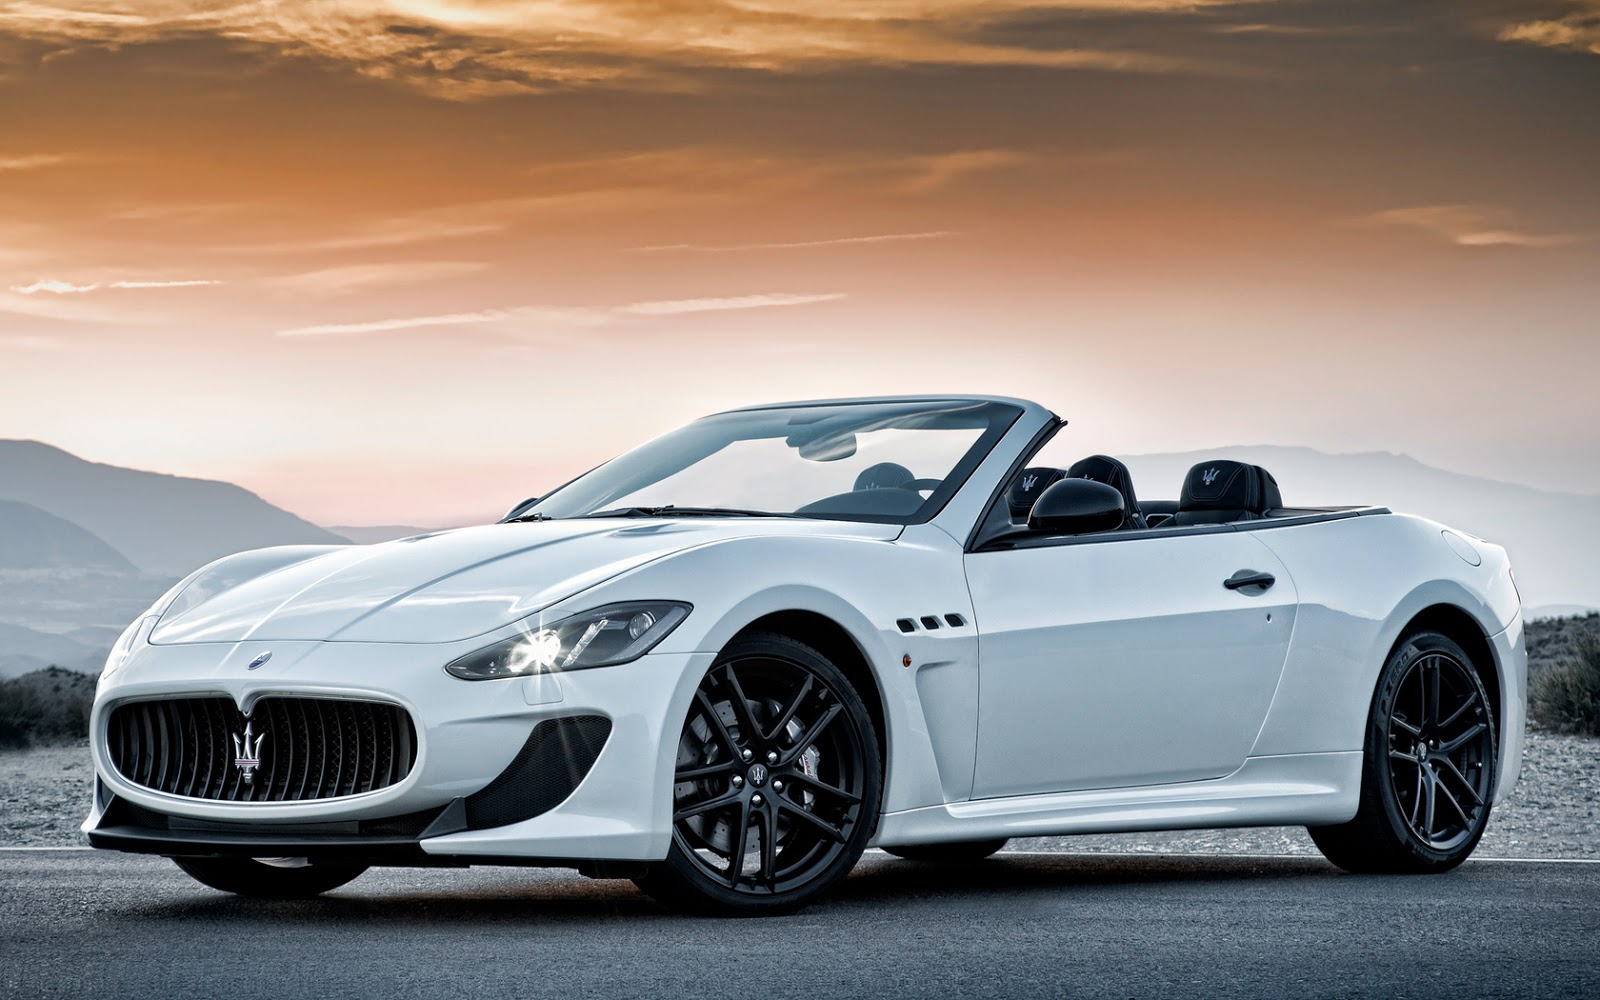 maserati granturismo wallpaper hd cars ~ latest cars models collection